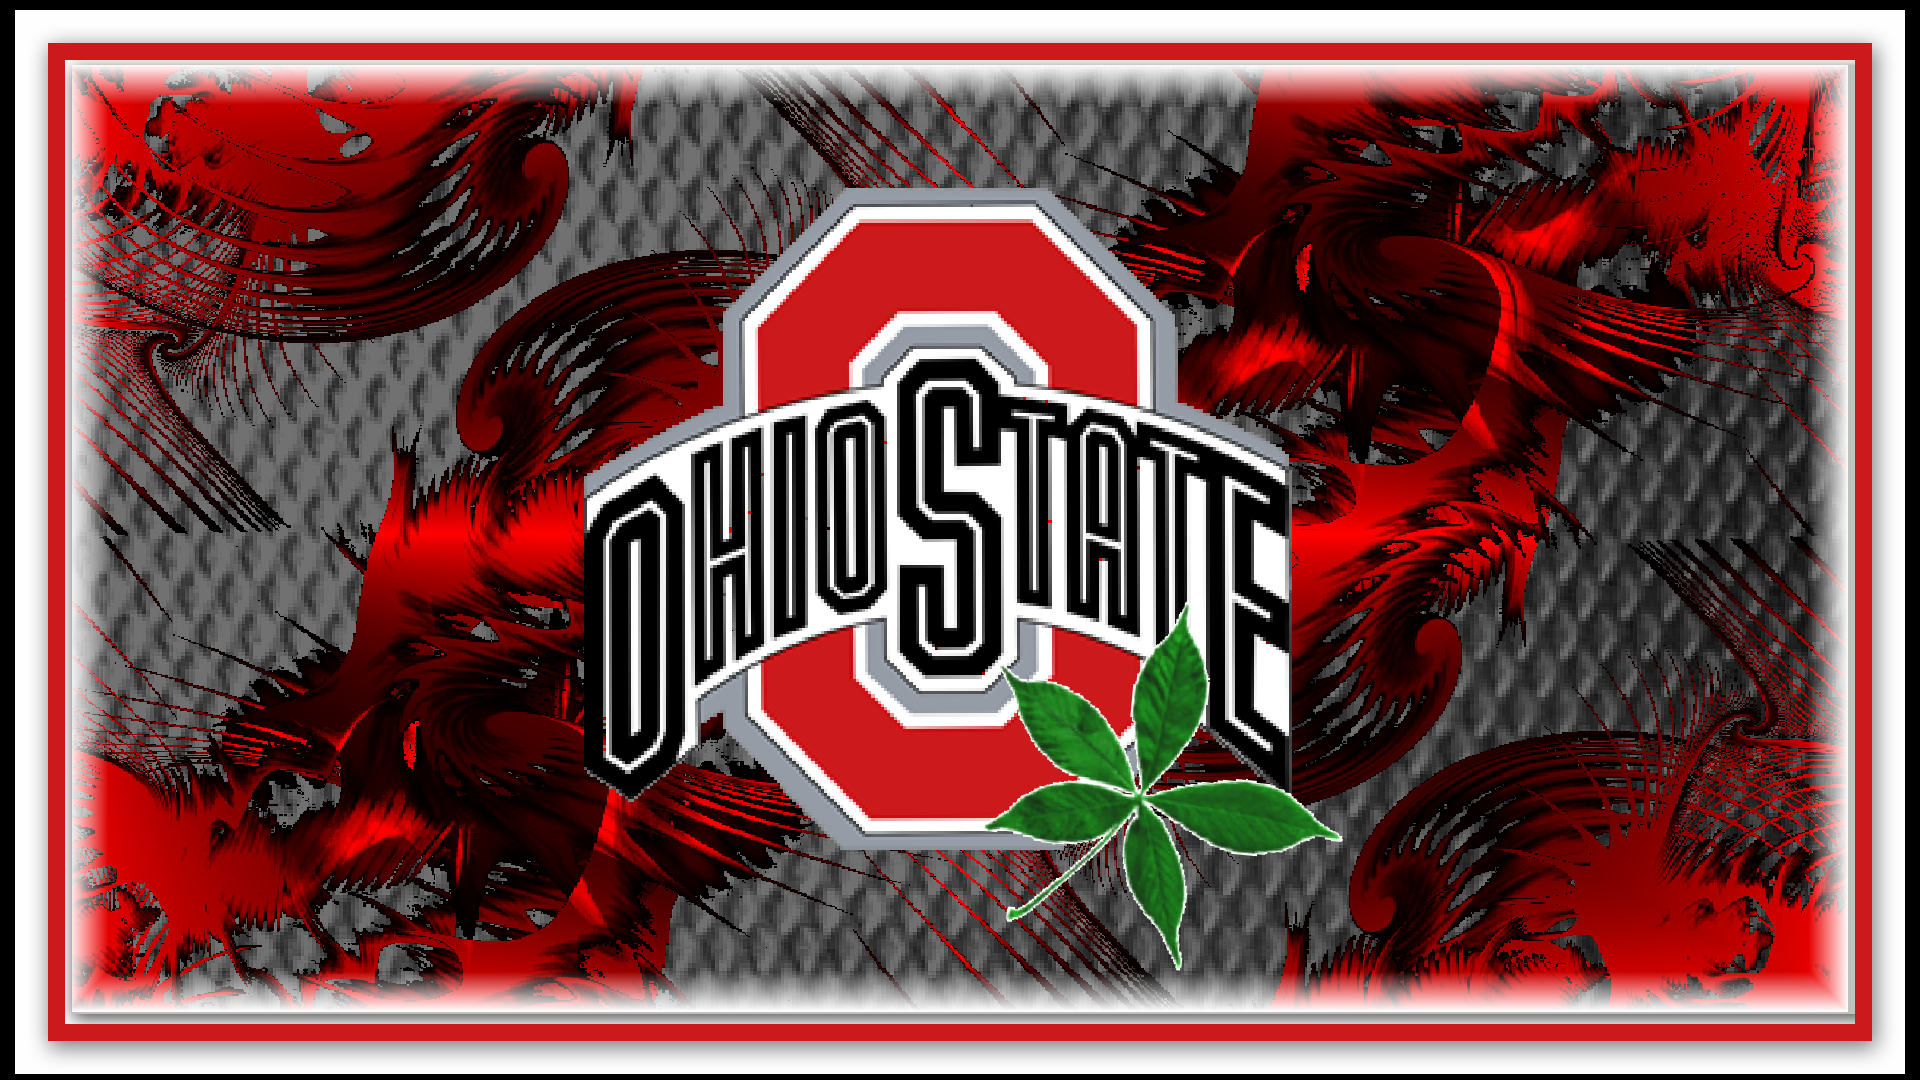 TRANSPARENT RED OHIO STATE - Ohio State Football Wallpaper